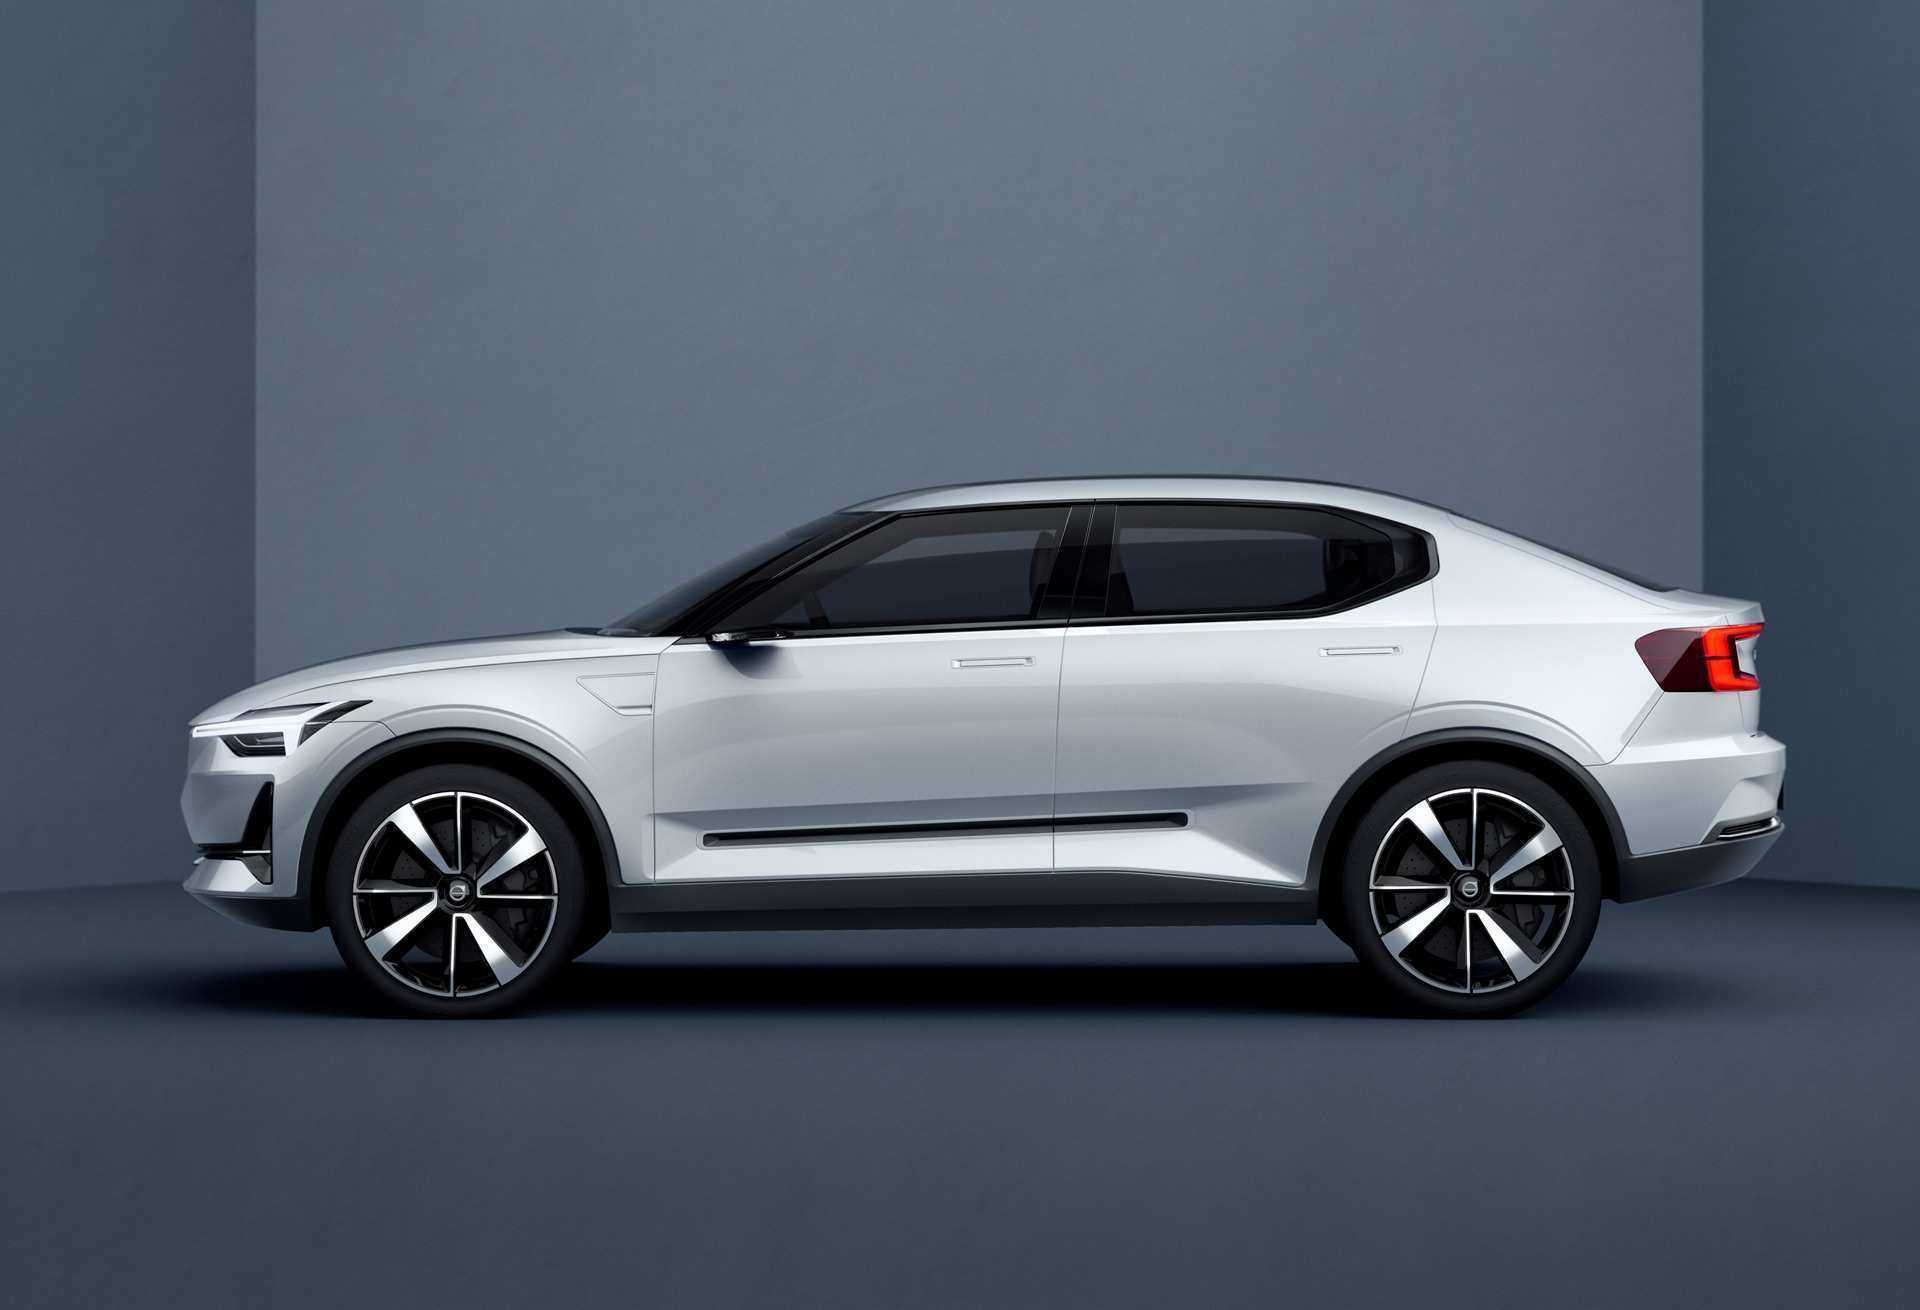 95 Great Volvo Xc40 2020 New Concept Performance by Volvo Xc40 2020 New Concept